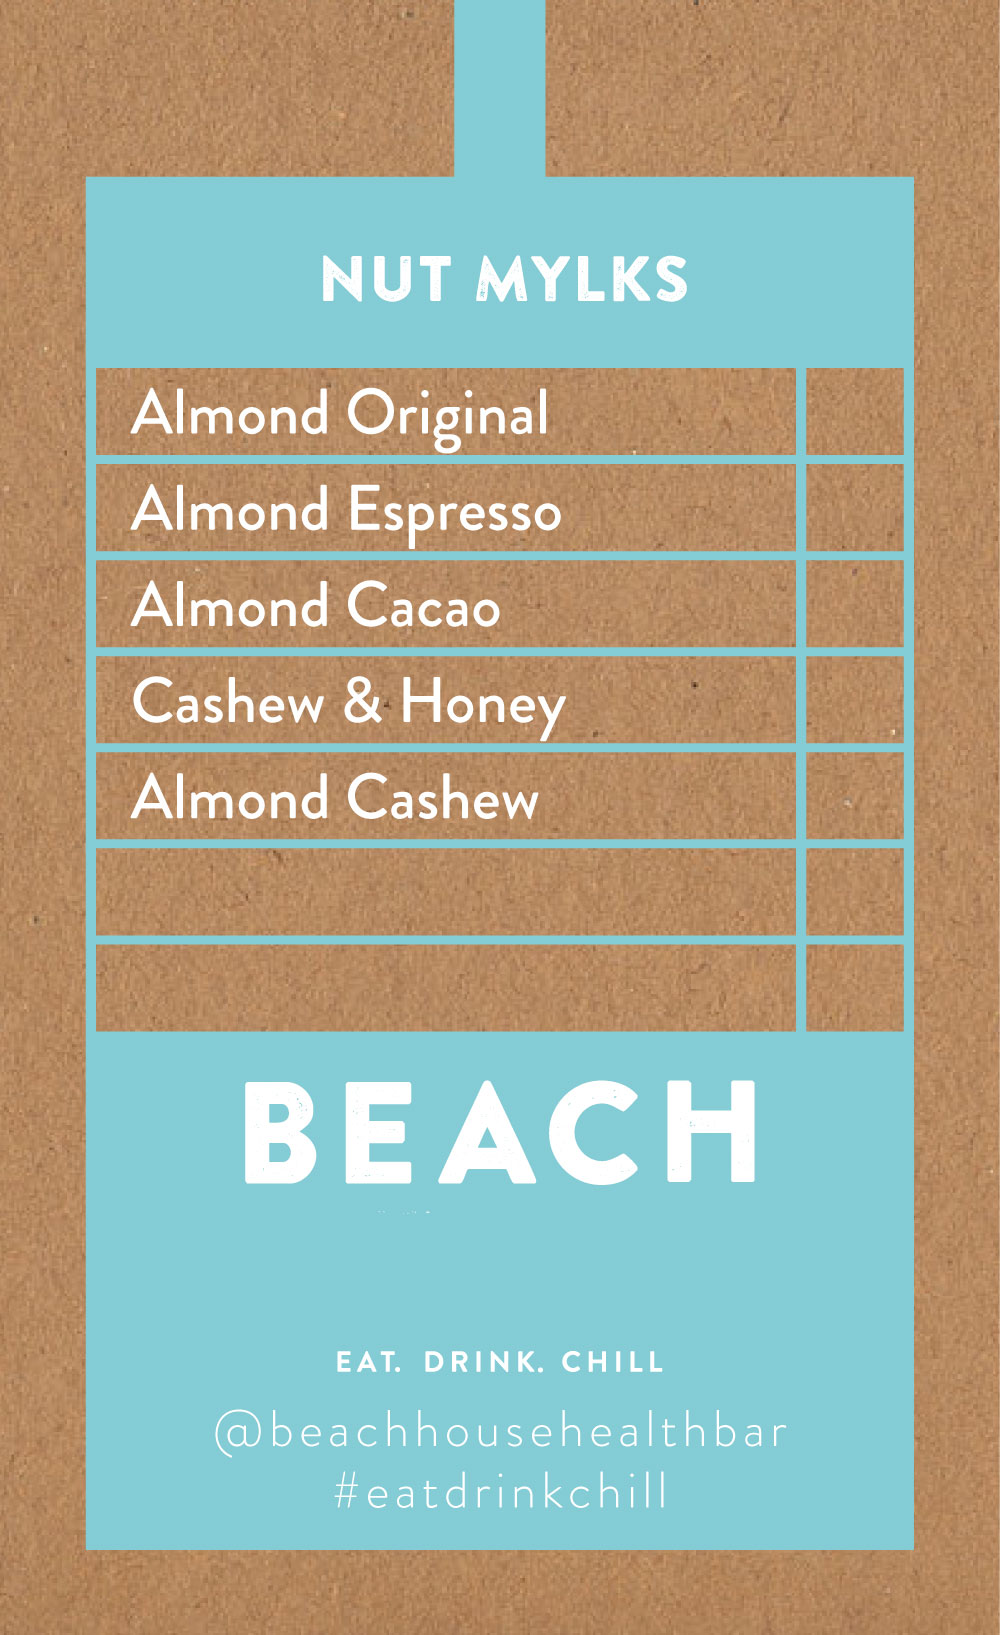 201504-002_SIGNAGE_POS_BottleTags_BeachHouse_90x55mm_2